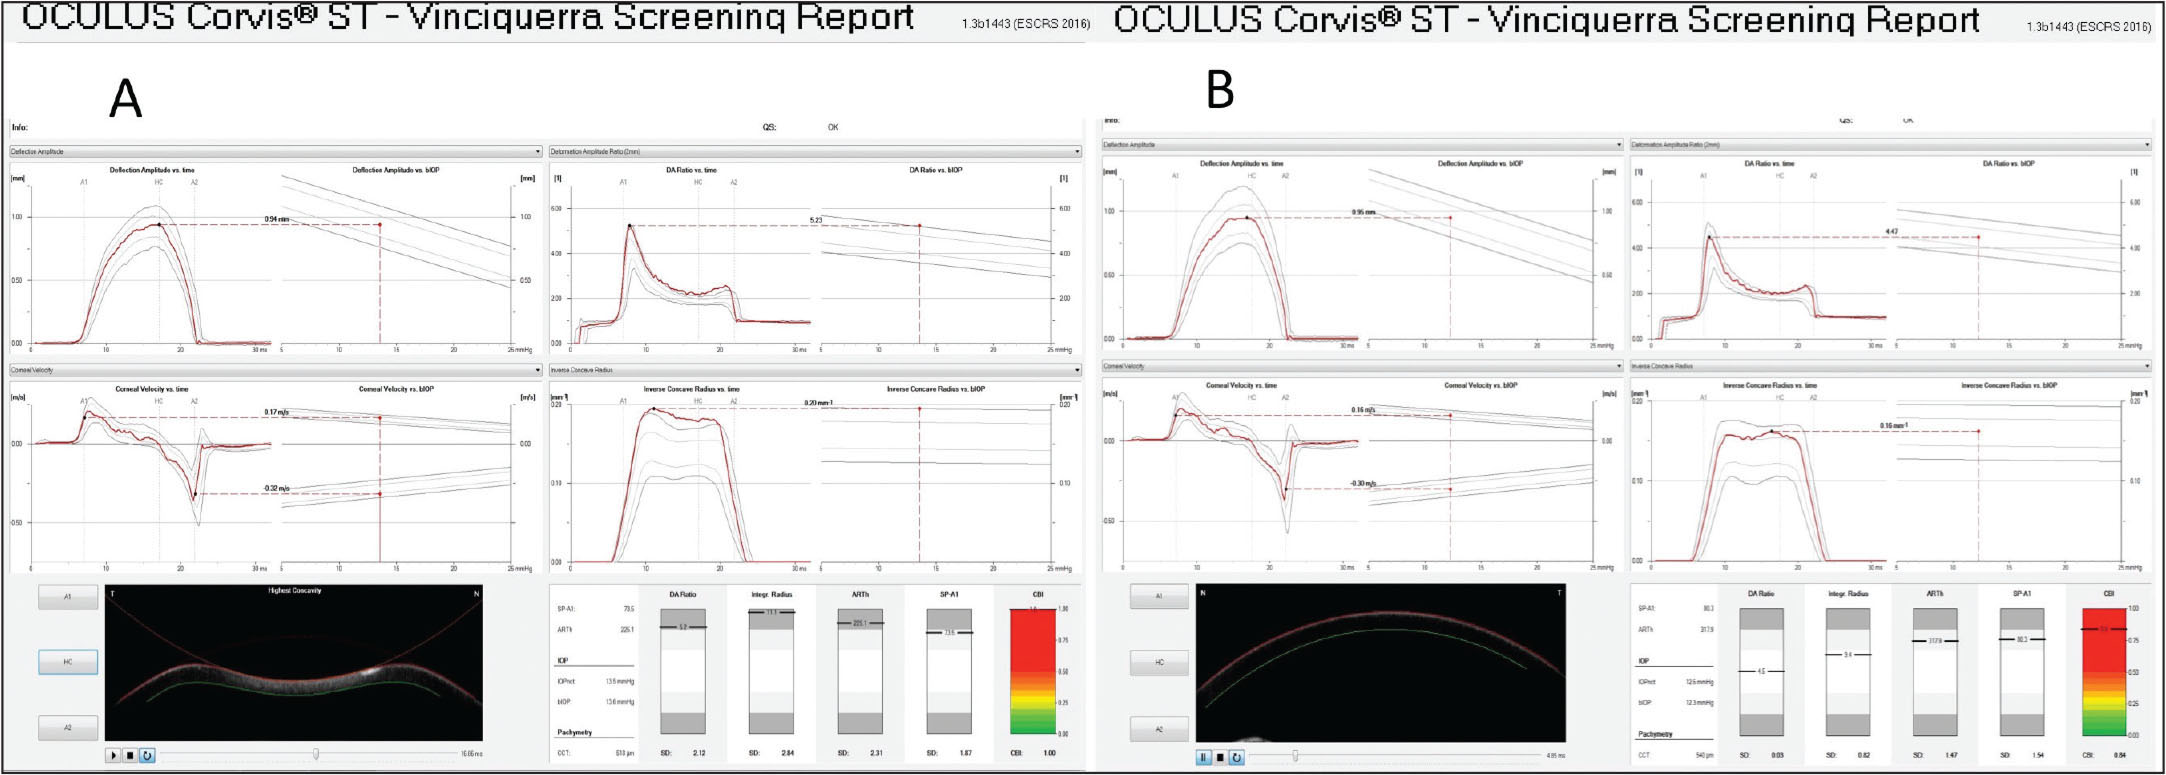 The follow-up biomechanical analysis with the Vinciguerra Screening Report in case 8 in 2014. The biomechanics of either the right (Corvis Biomechanical Index score of 1) or left (Corvis Biomechanical Index score of 0.84) eye became abnormal.